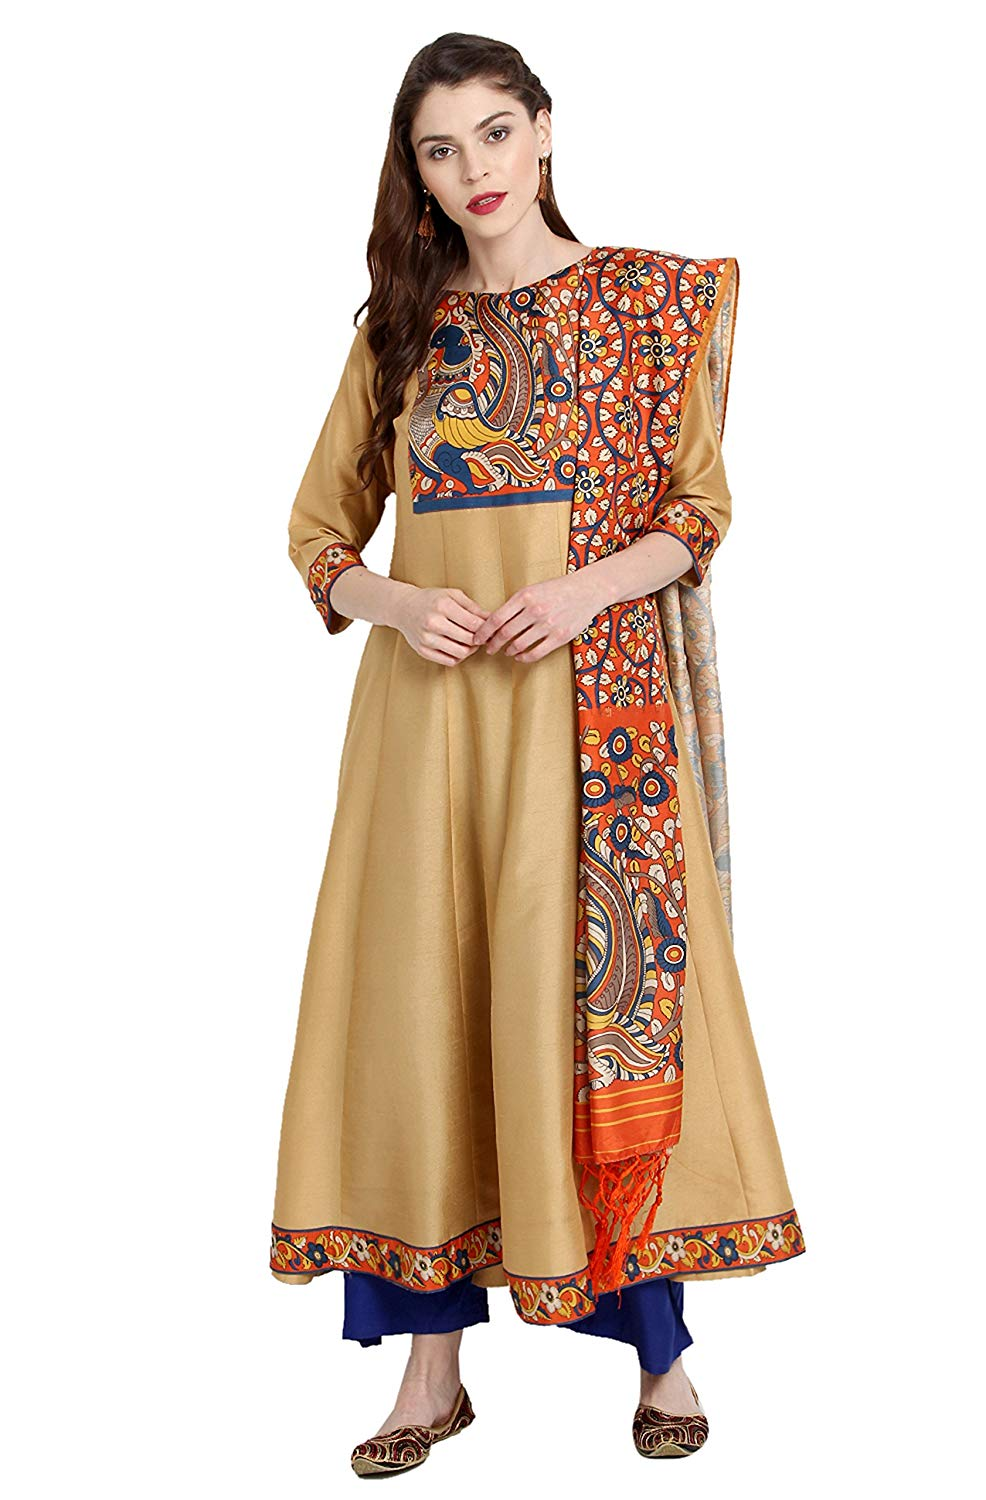 Janasya Women's Orange Poly Silk Anarkali Digital Print Kurta With Dupatta